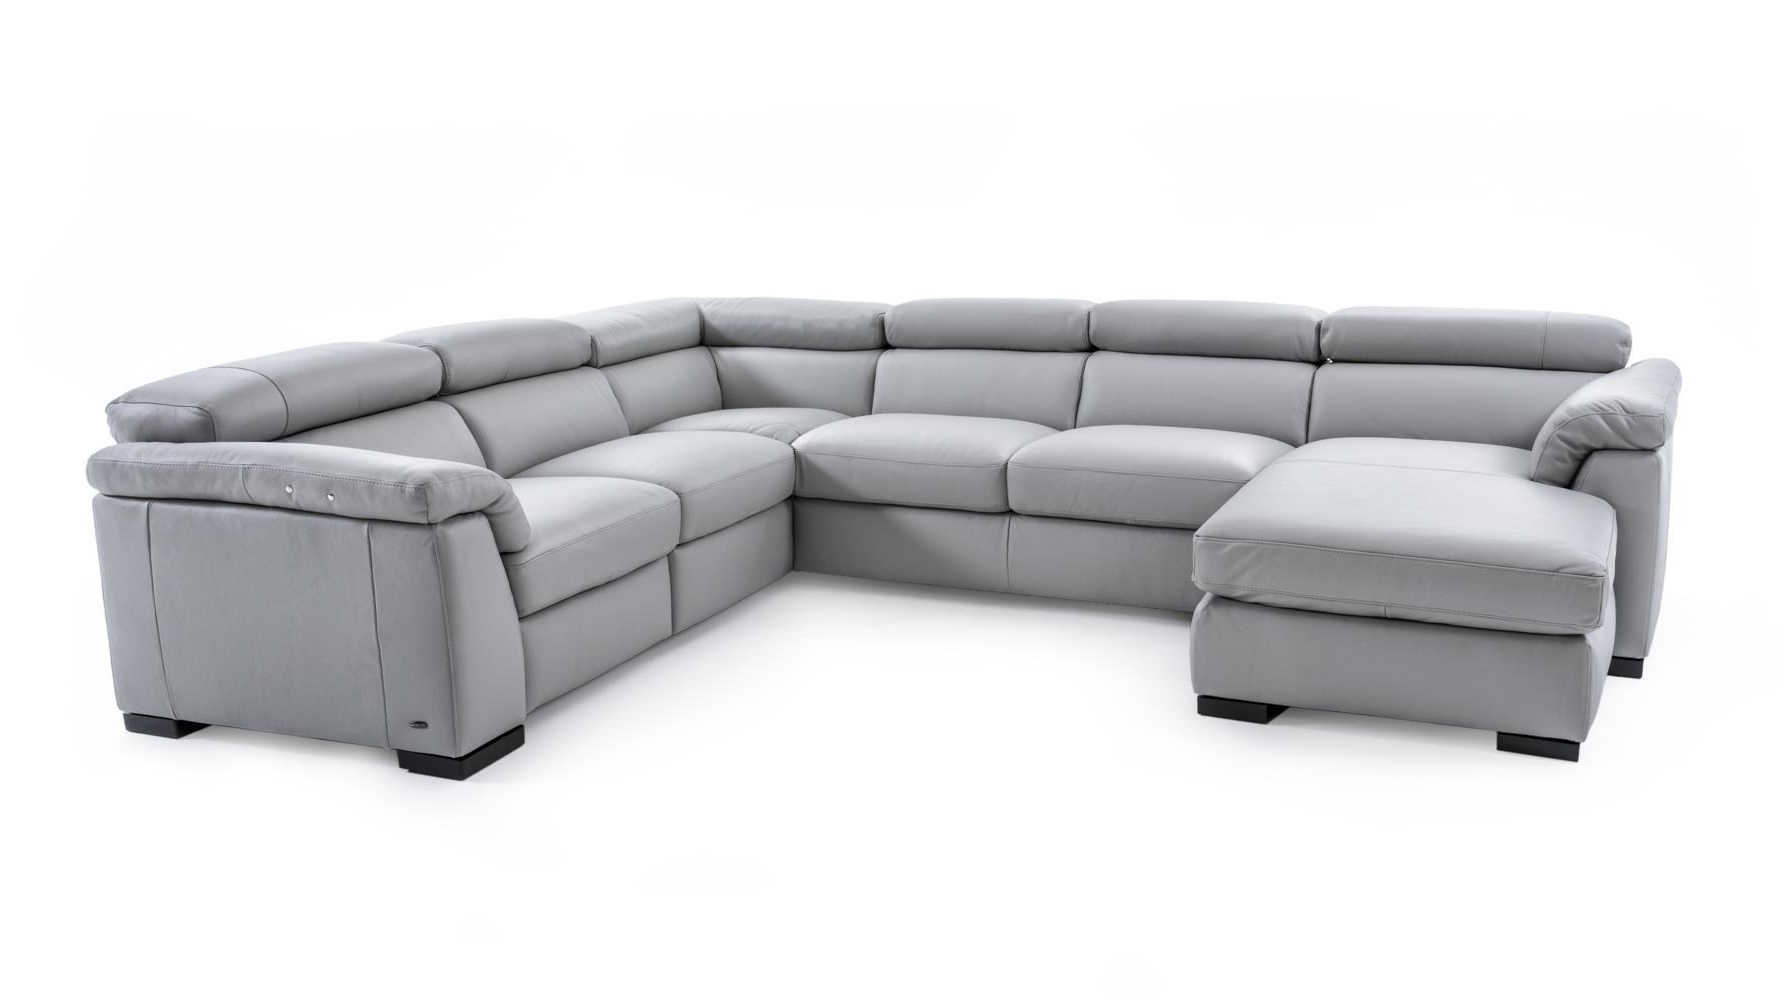 Natuzzi Sectional Sofas Within Well Known Natuzzi Editions B634 B634 Sect 1 Gray Contemporary Leather (View 11 of 15)